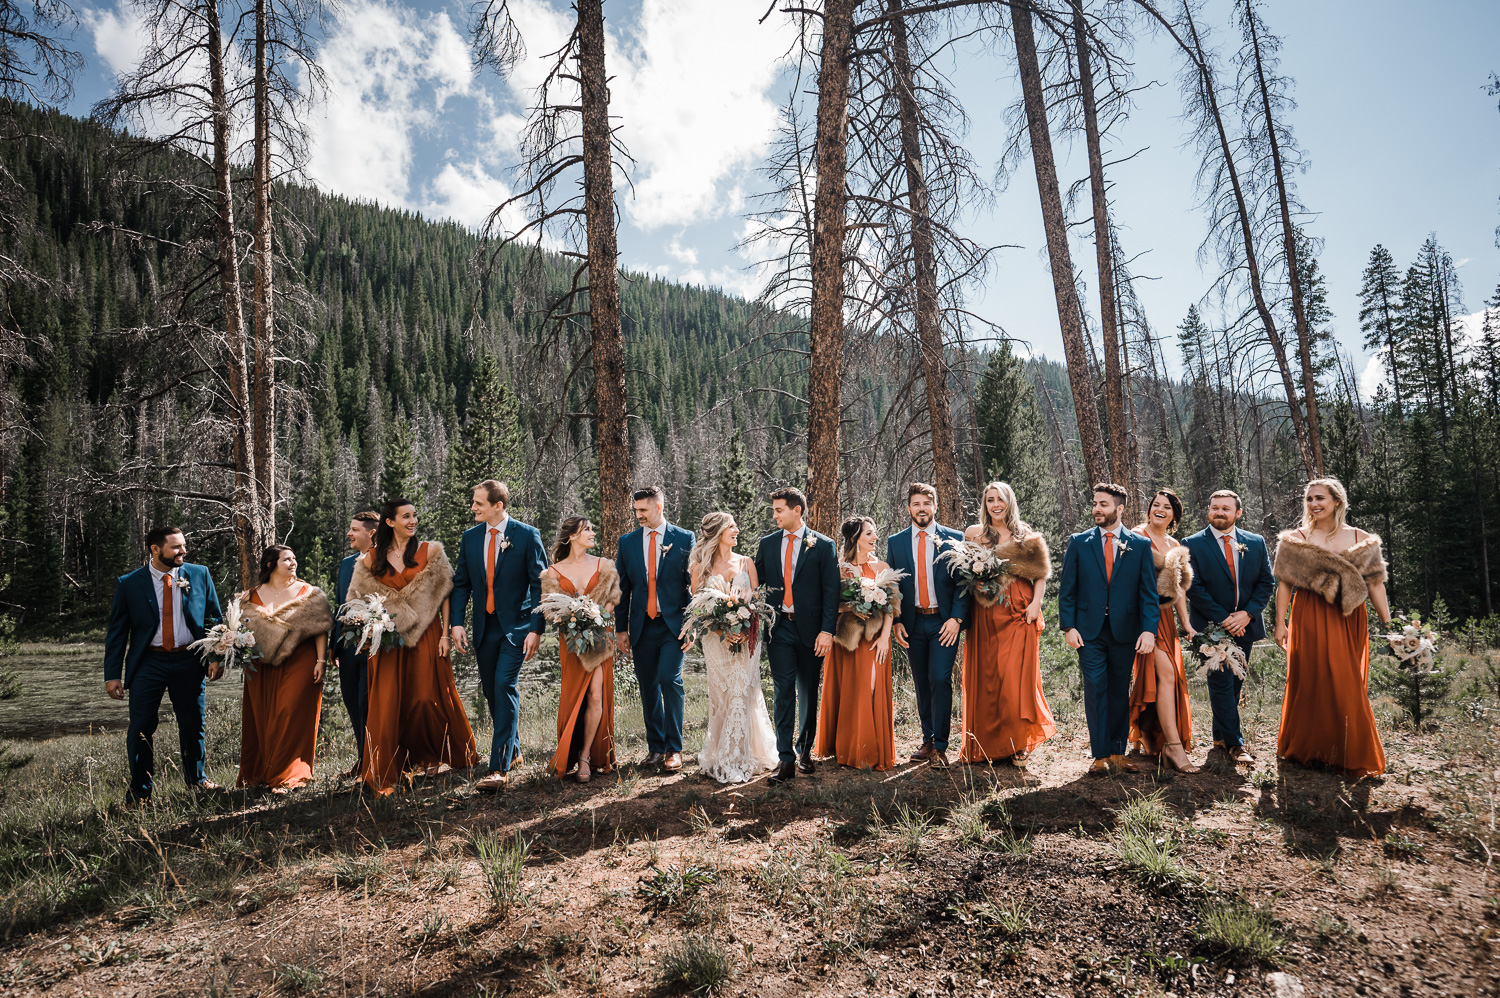 Fun bridal party at mountain wedding in CO, wearing rust and blue colors